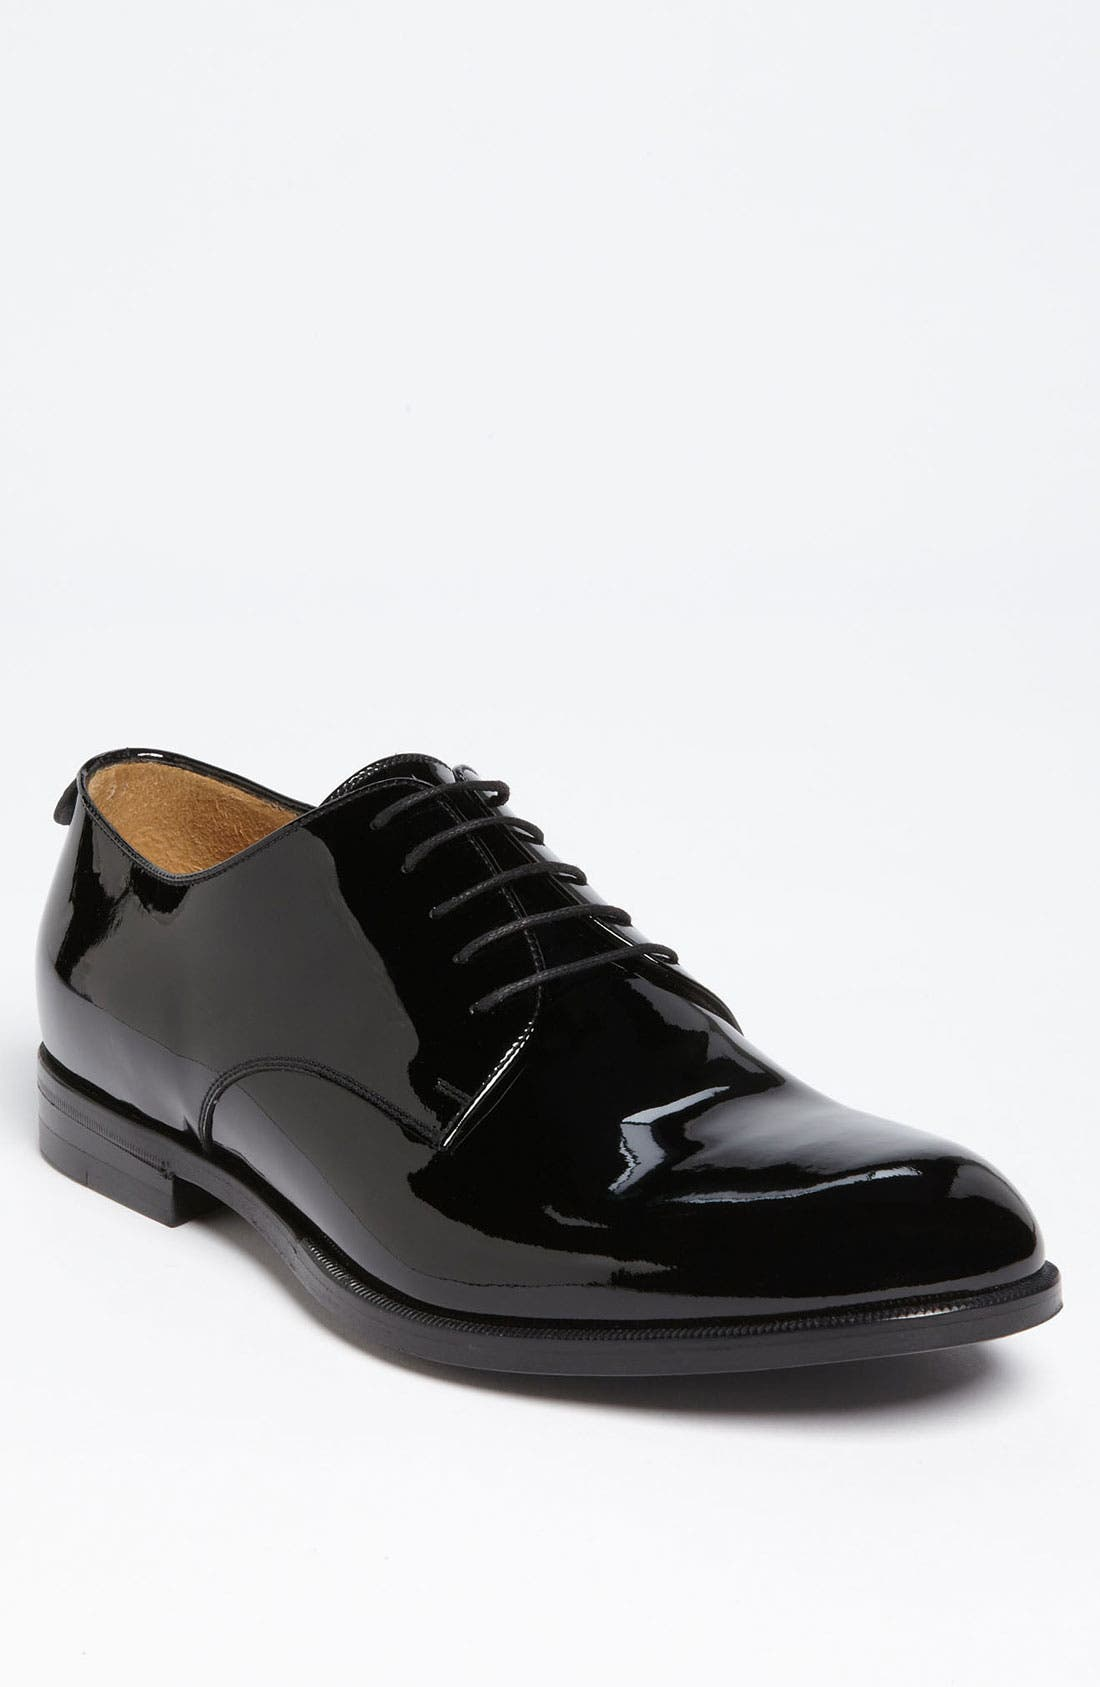 Main Image - Gucci 'Clerck' Patent Derby